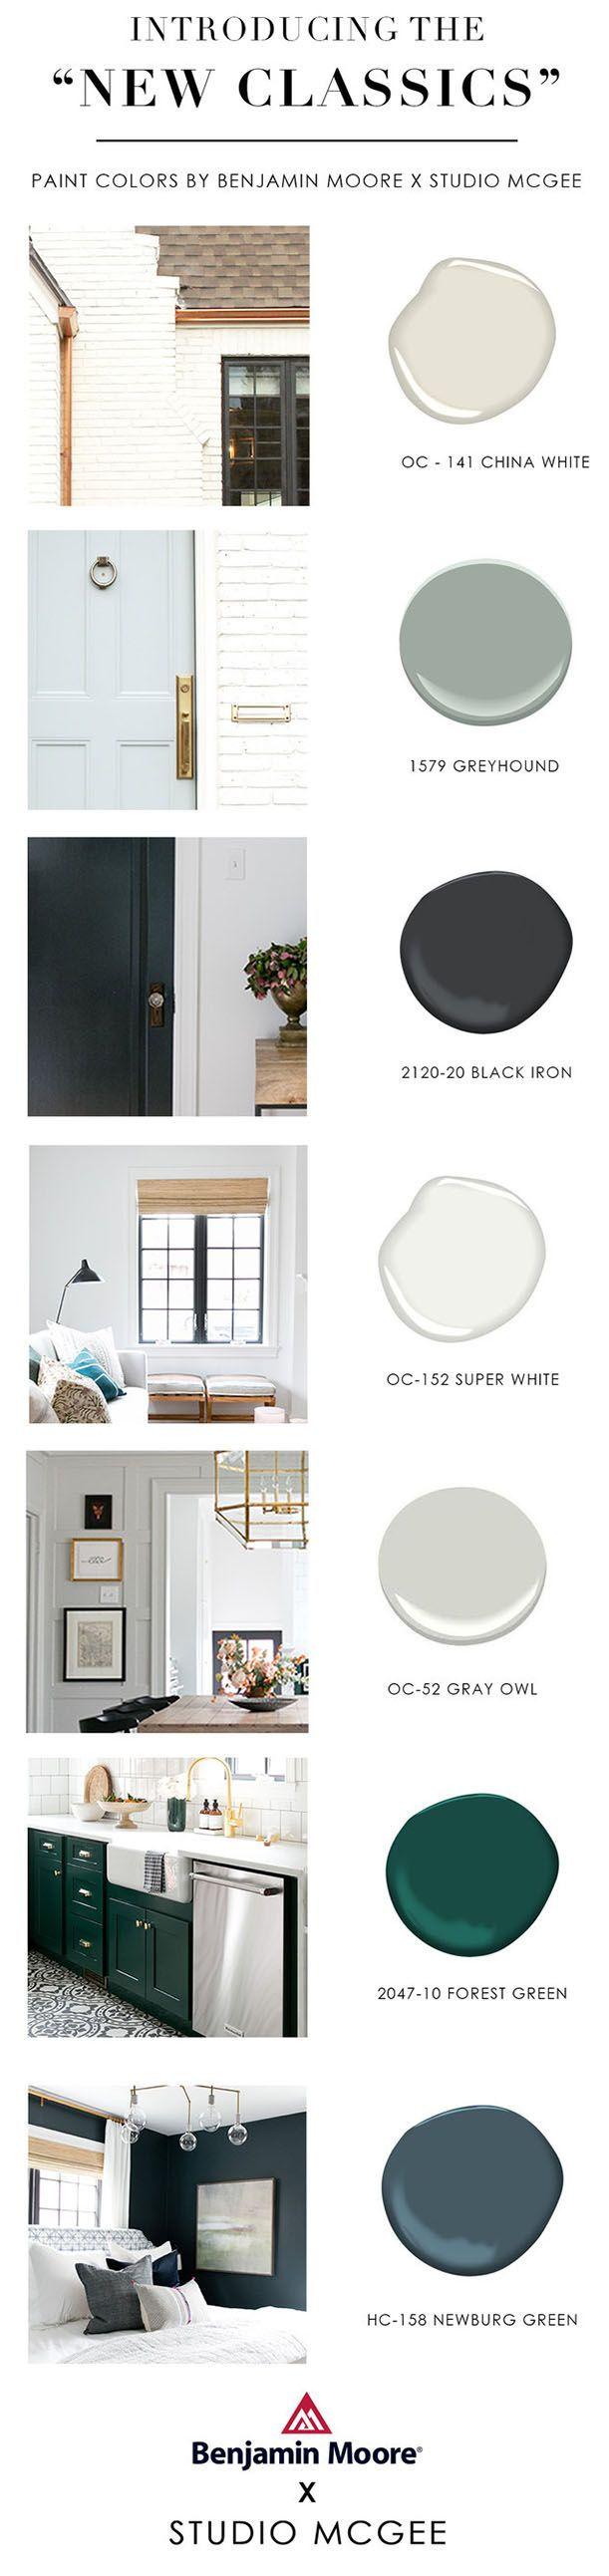 Friday Finds Vol. 28: The New Classics // Paint Colours By Studio McGee